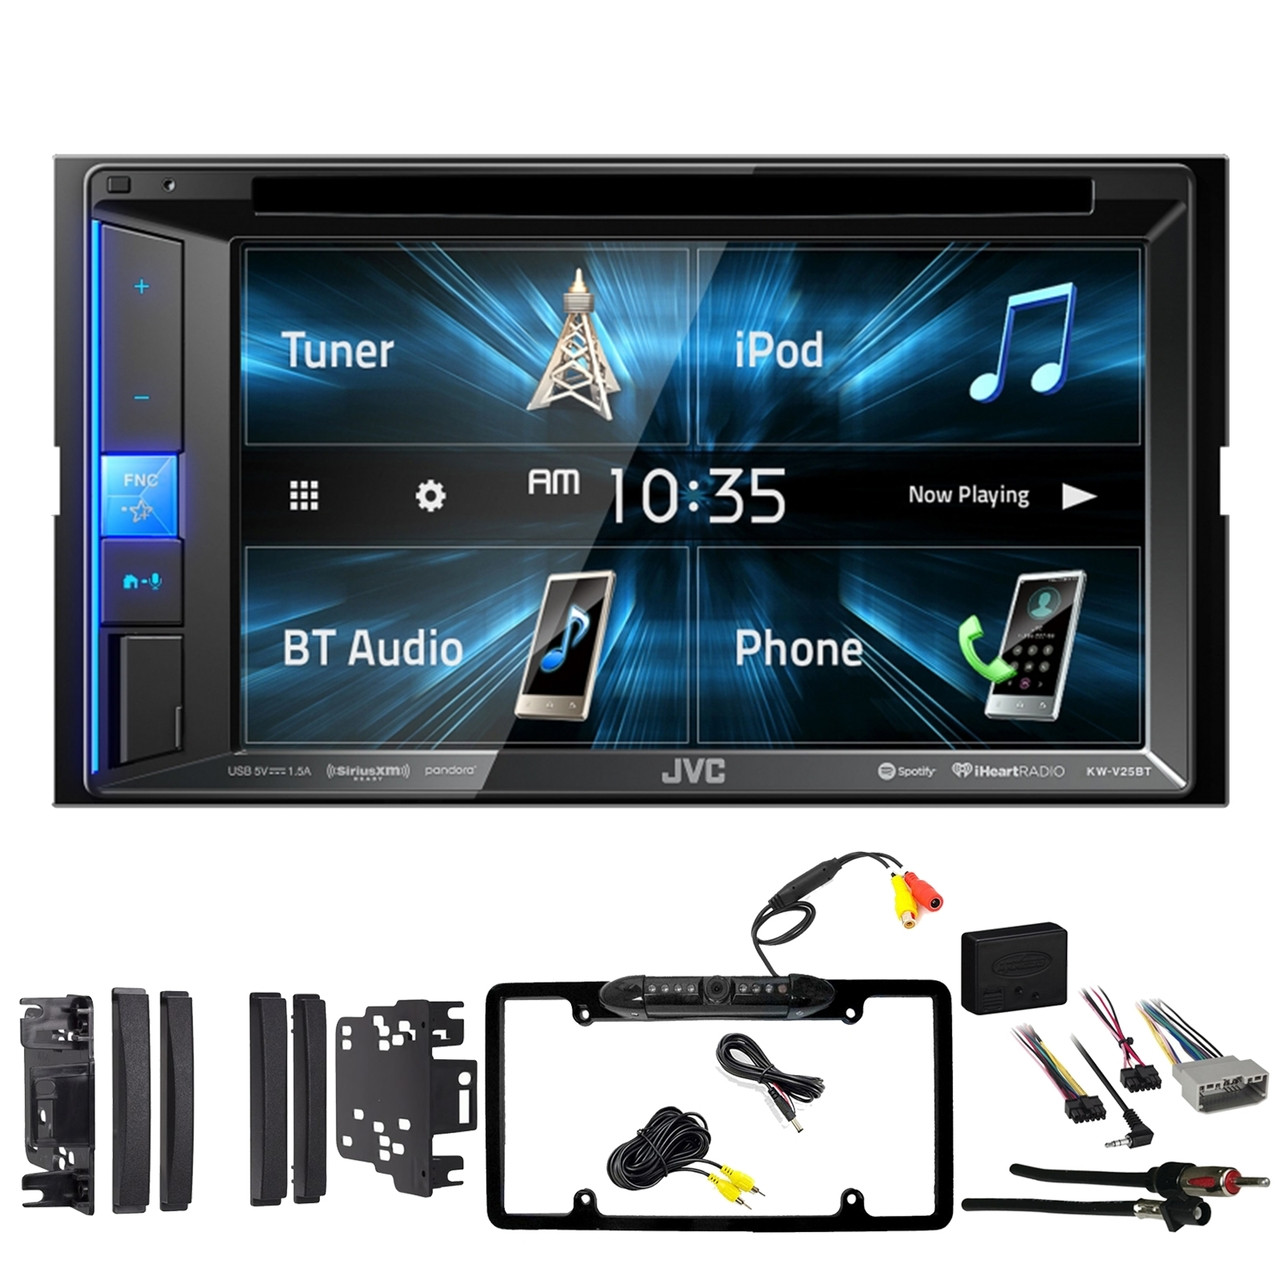 jvc kw v25bt 6 2 double din bluetooth touchscreen stereo receiver metra dash kit for select 2007 up chrysler vehicles wiring interface antenna adapter  [ 1280 x 1280 Pixel ]